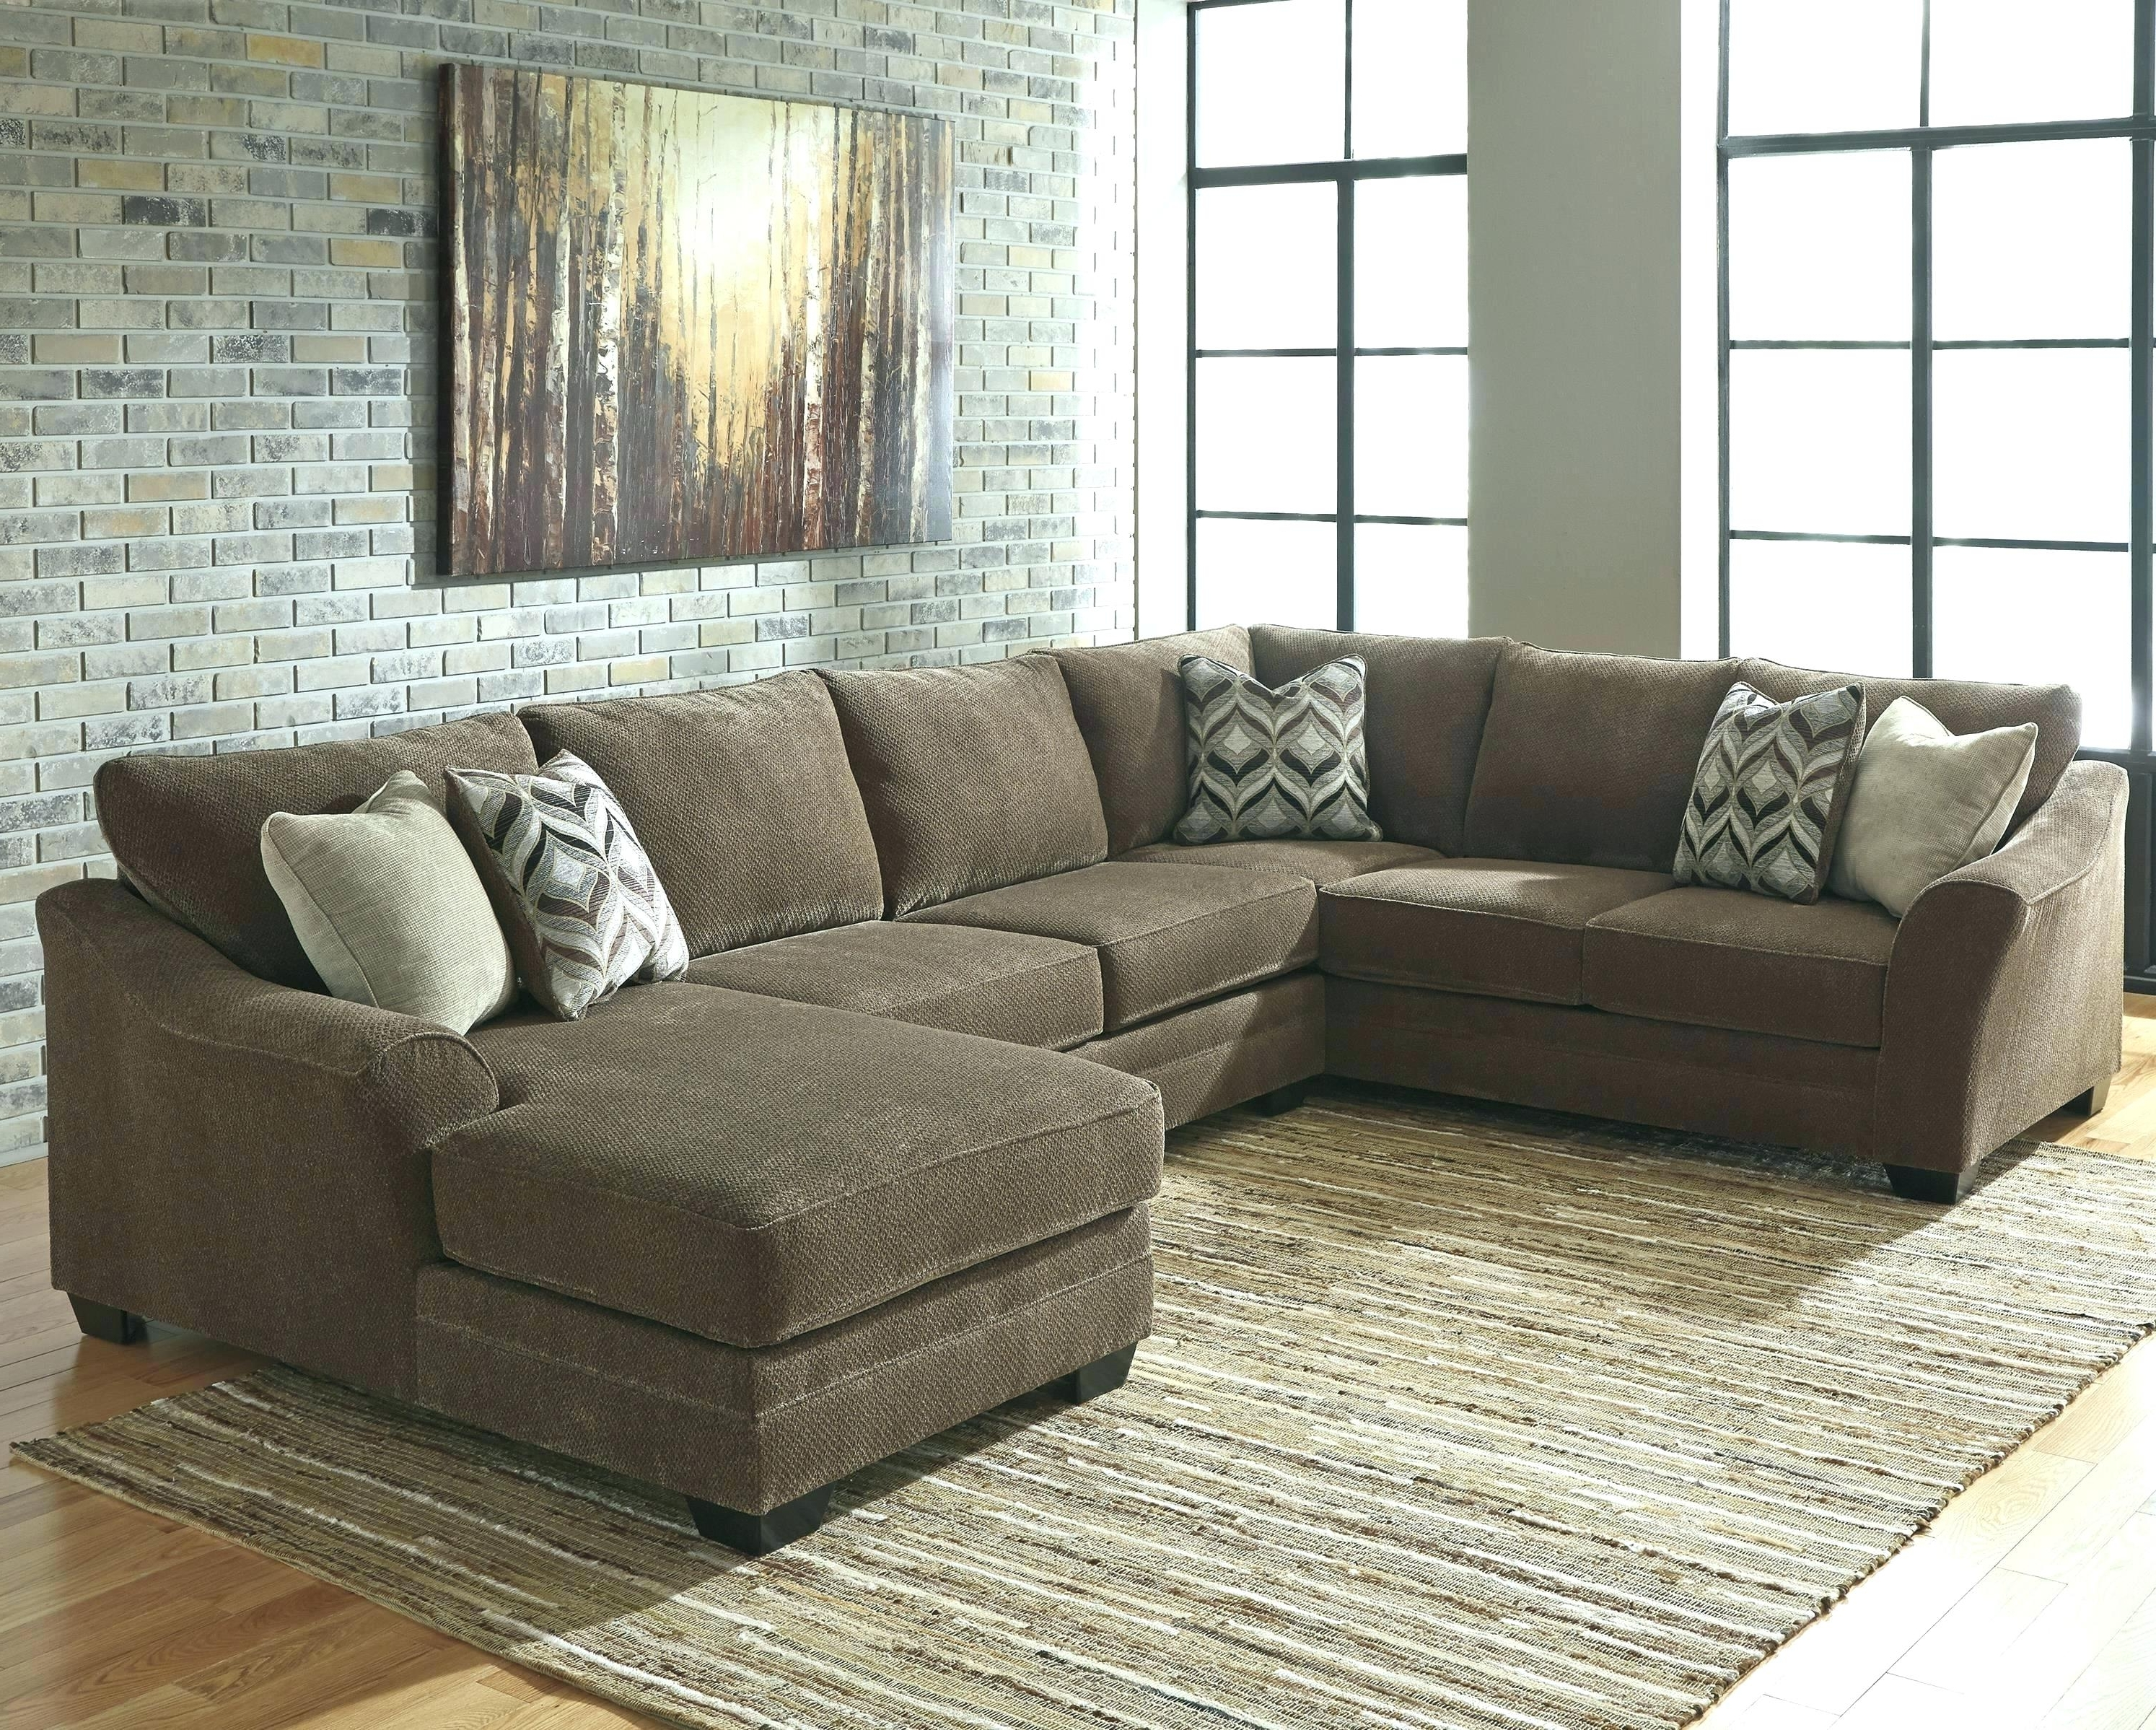 Couches For Sale Mn Duluth Marshall Used Furniture Rochester Throughout Well Liked St Cloud Mn Sectional Sofas (View 20 of 20)